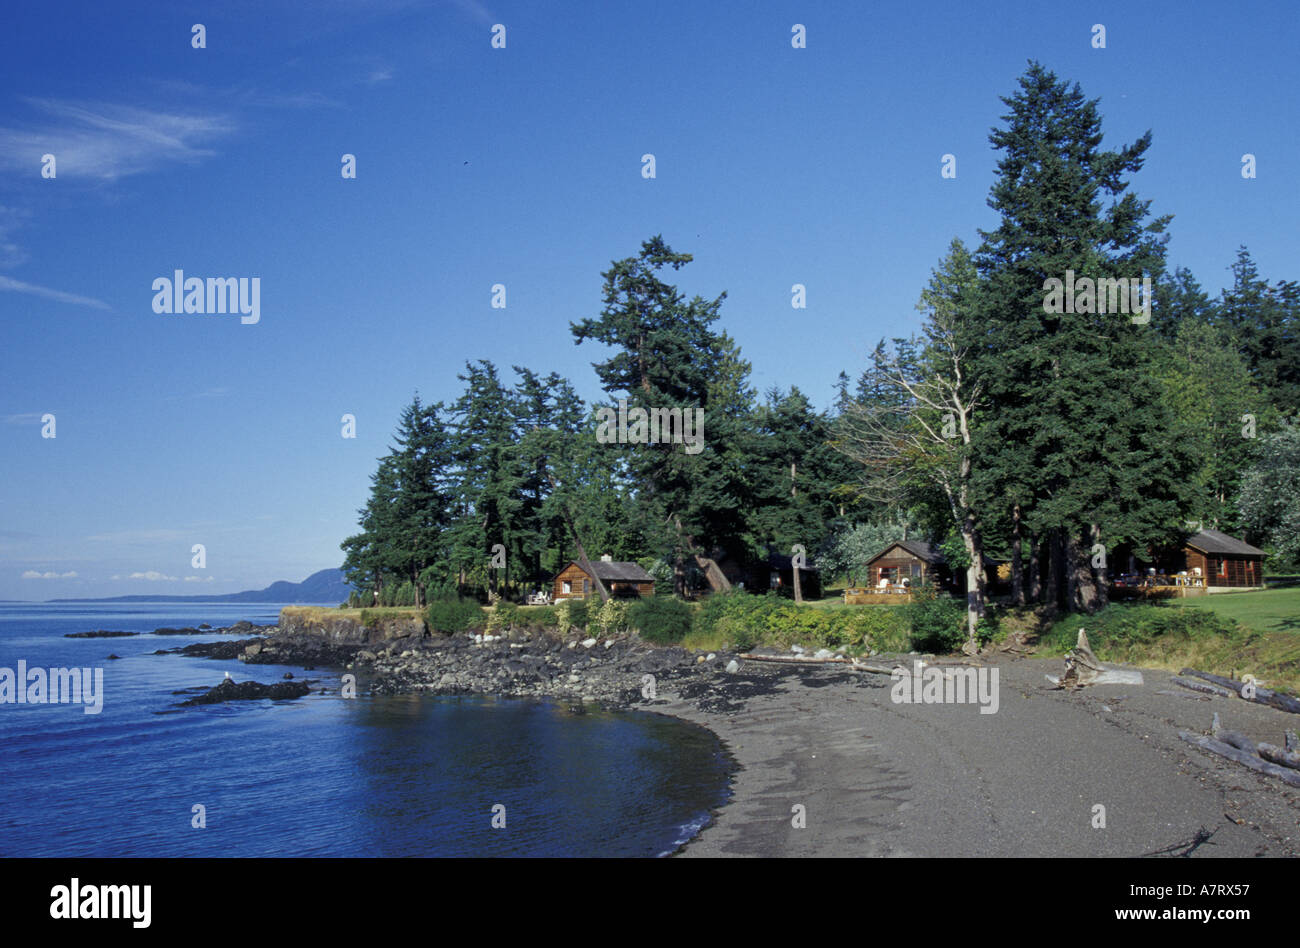 N.A., USA, Washington, San Juan Islands. Cabin At Lonesome Cove Resort  Overlooking Spieden Channel. (PR